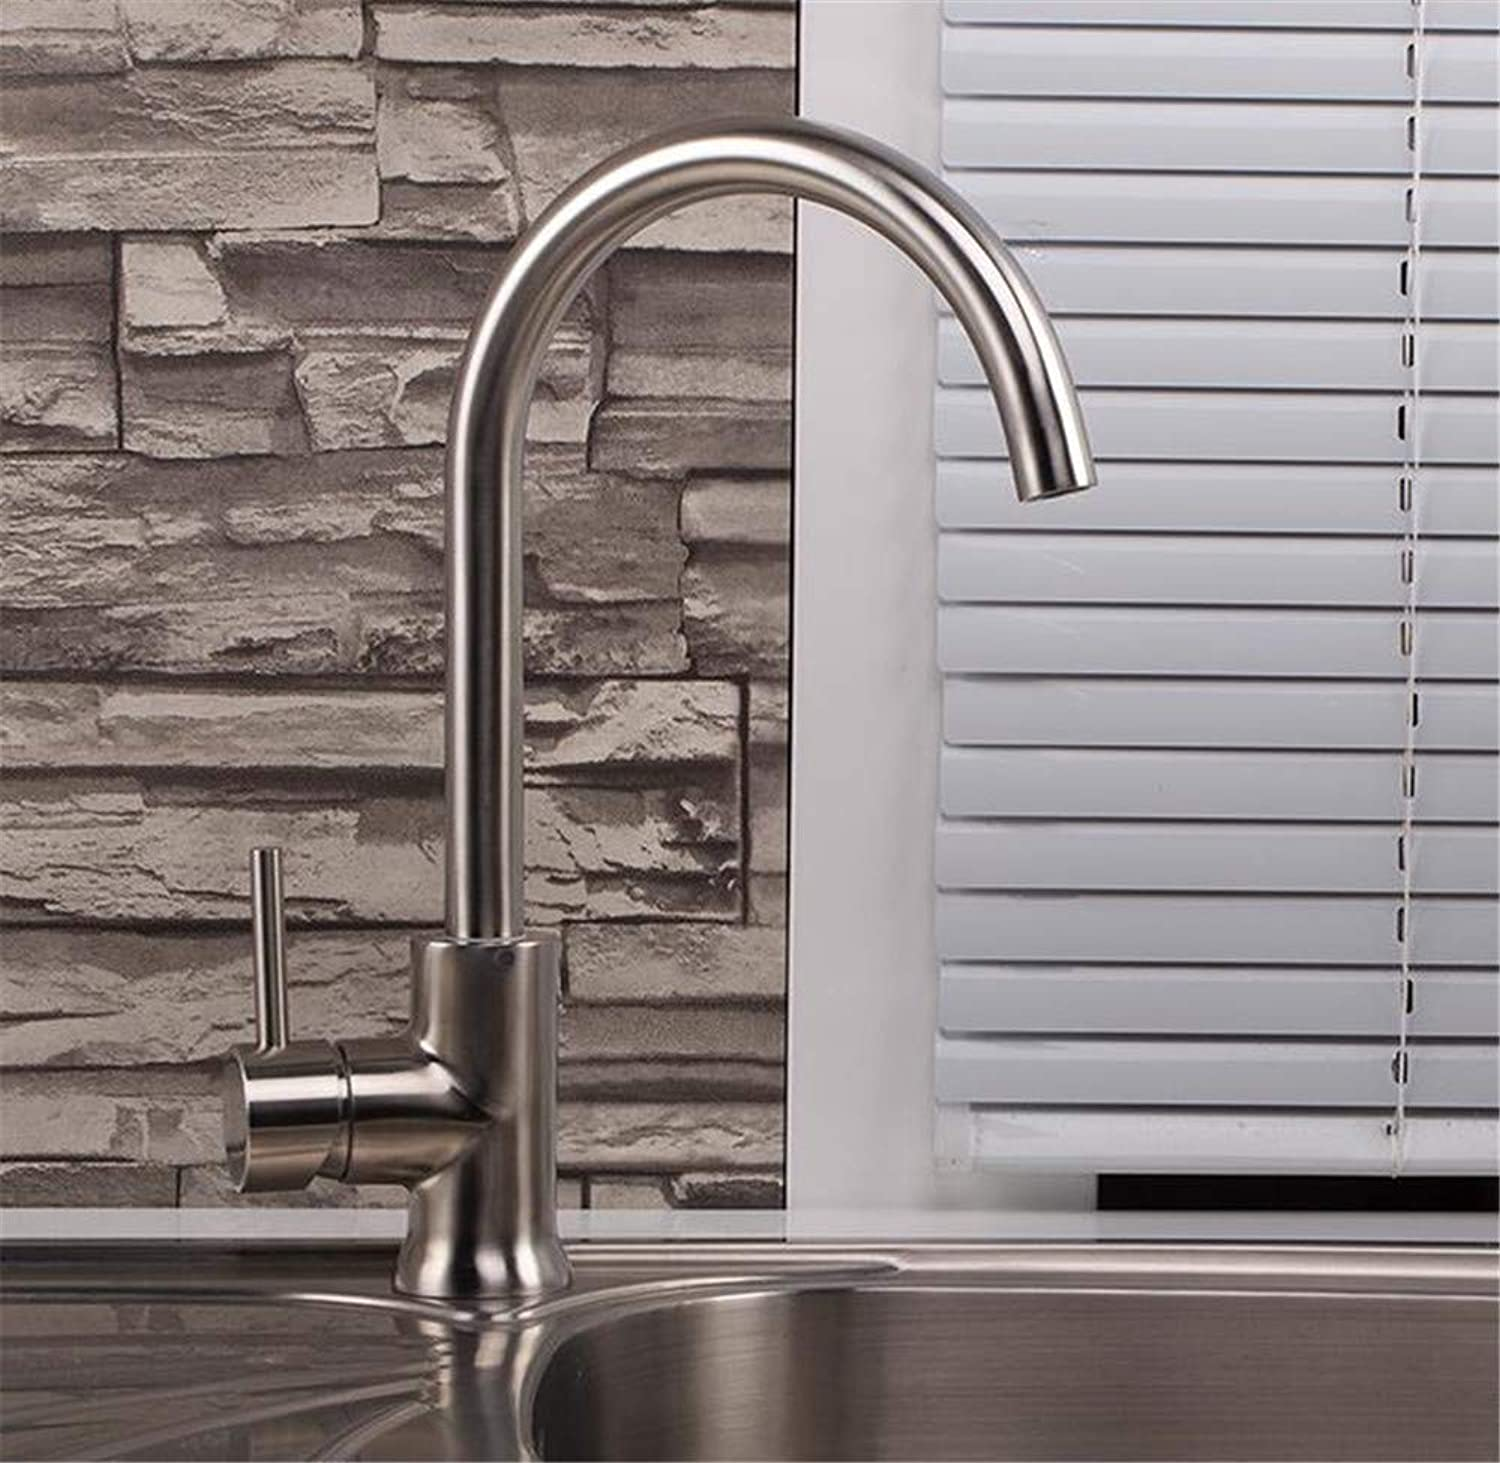 Decorry Stainless Steel Kitchen Kitchen Sink Faucet Hot and Cold Taps 304